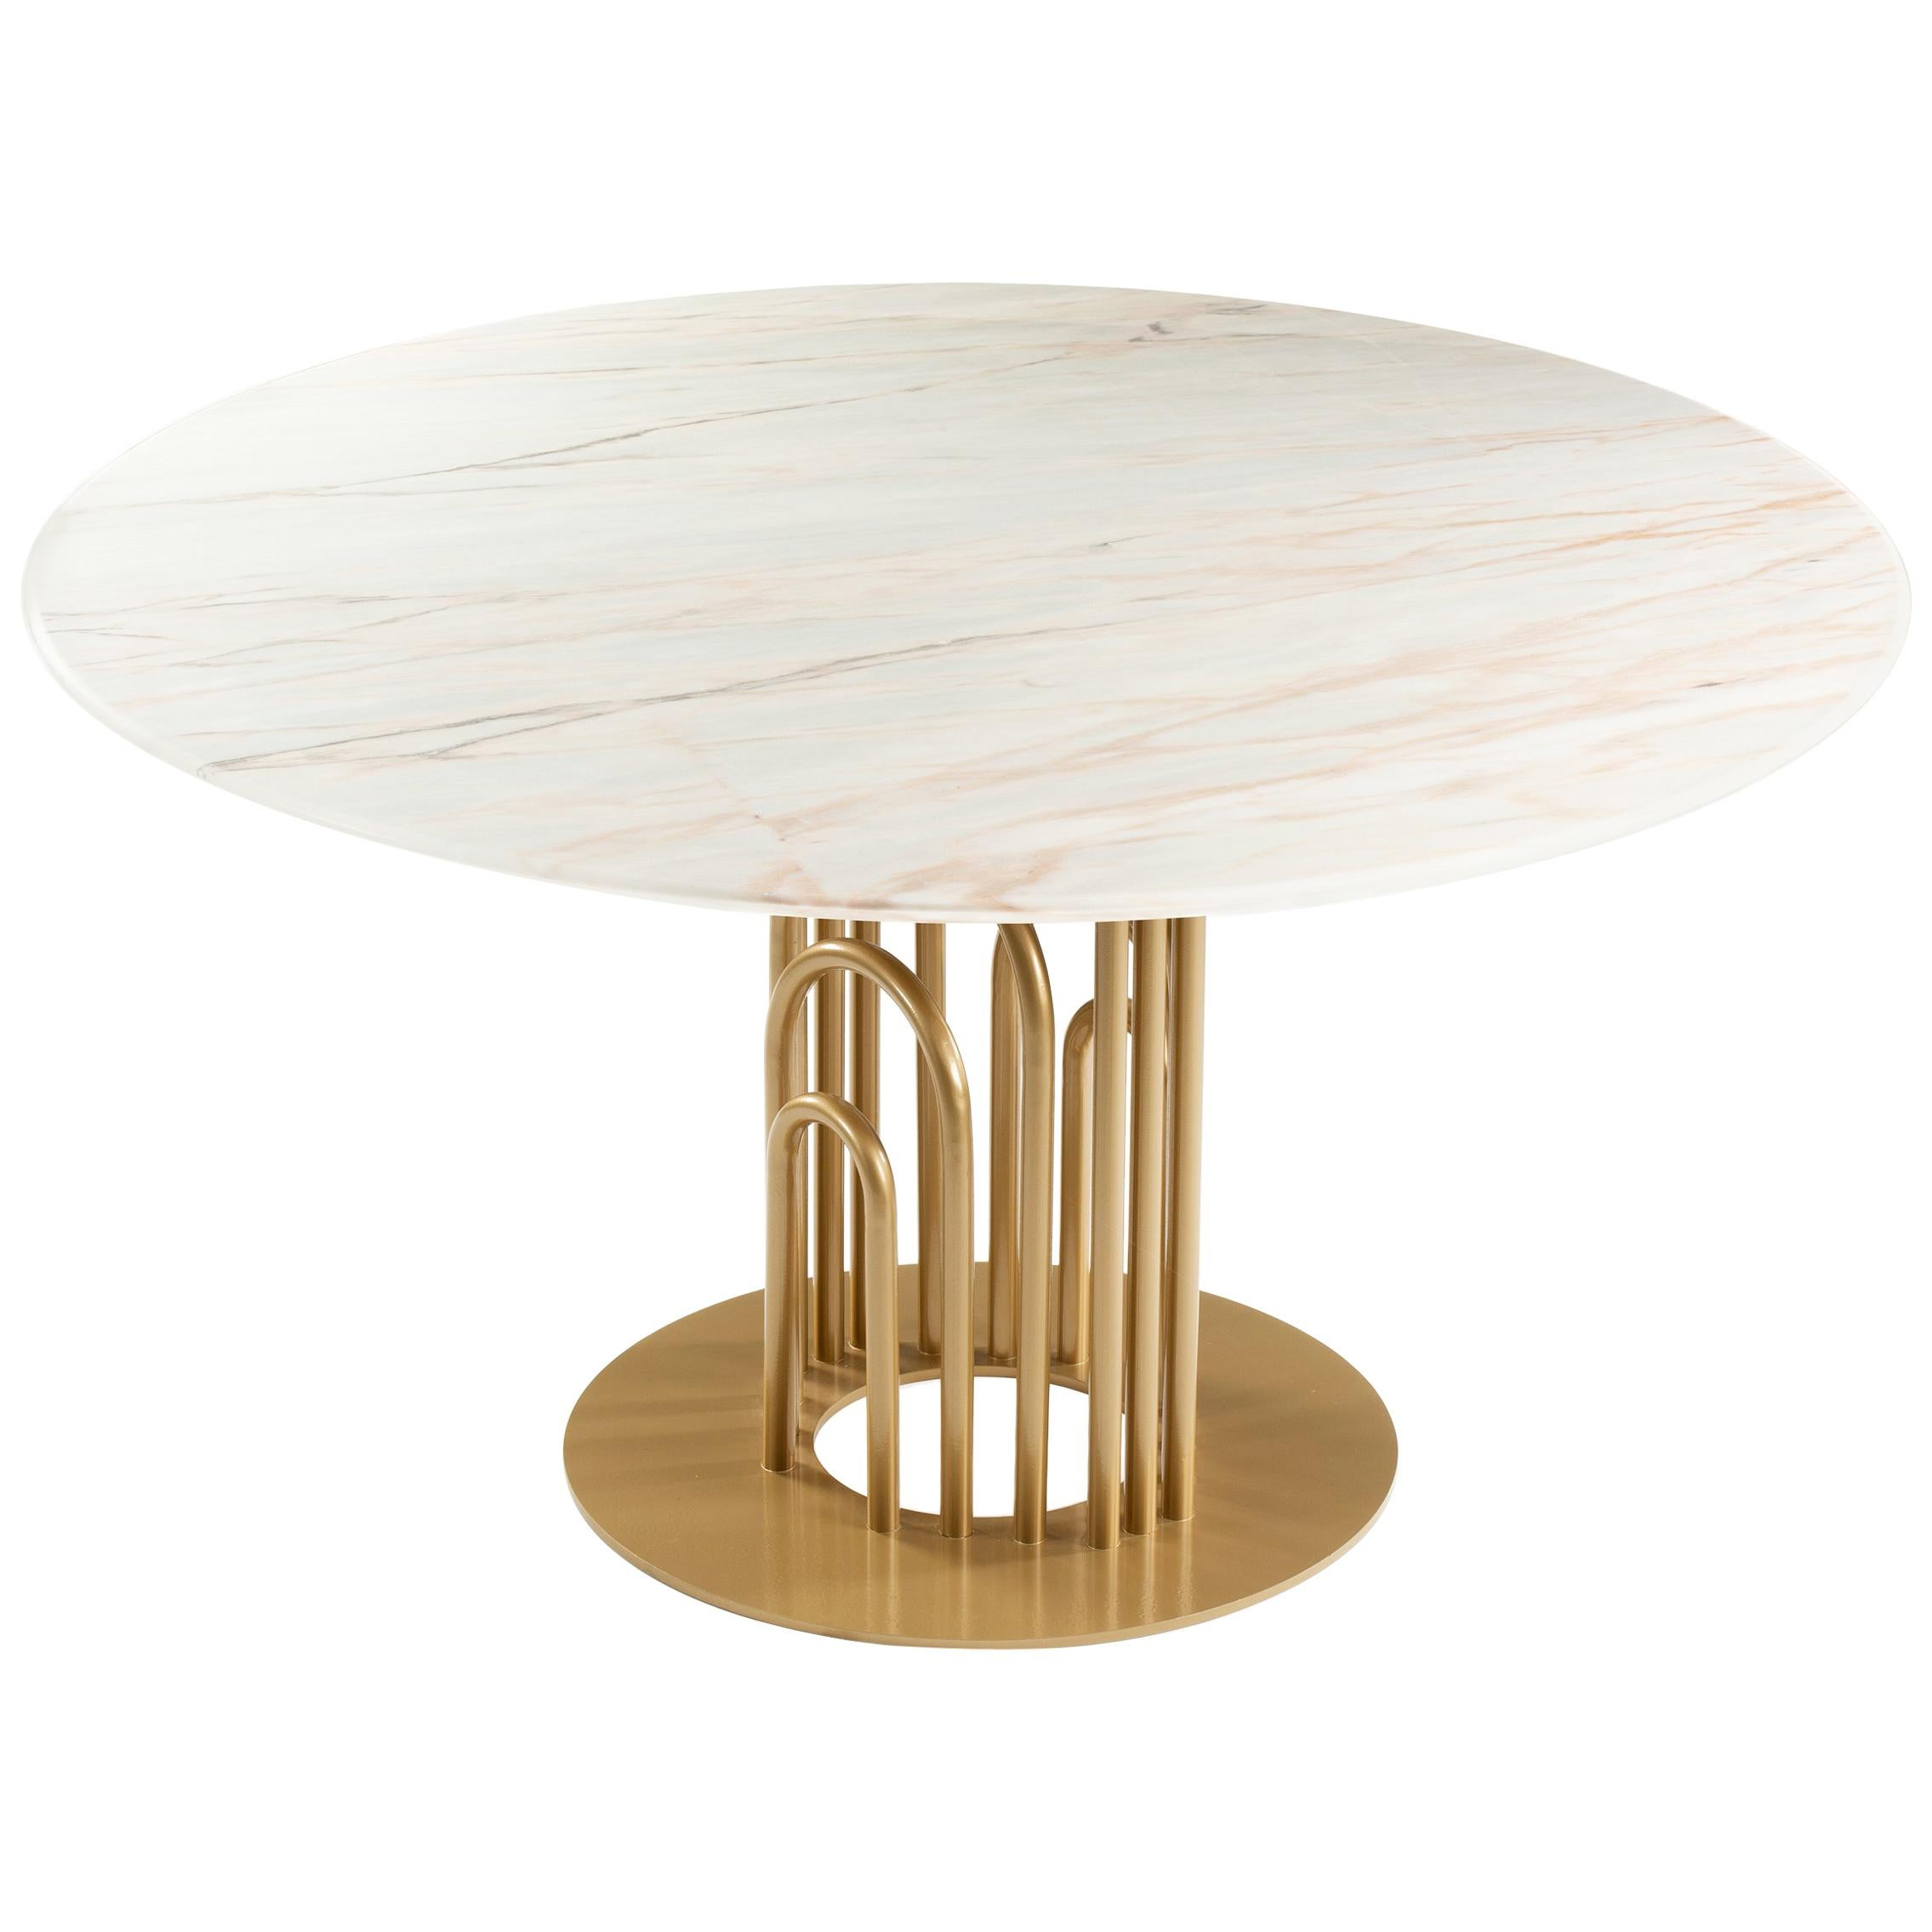 Dinner Table Bara in Lacquered Metal 120Ø